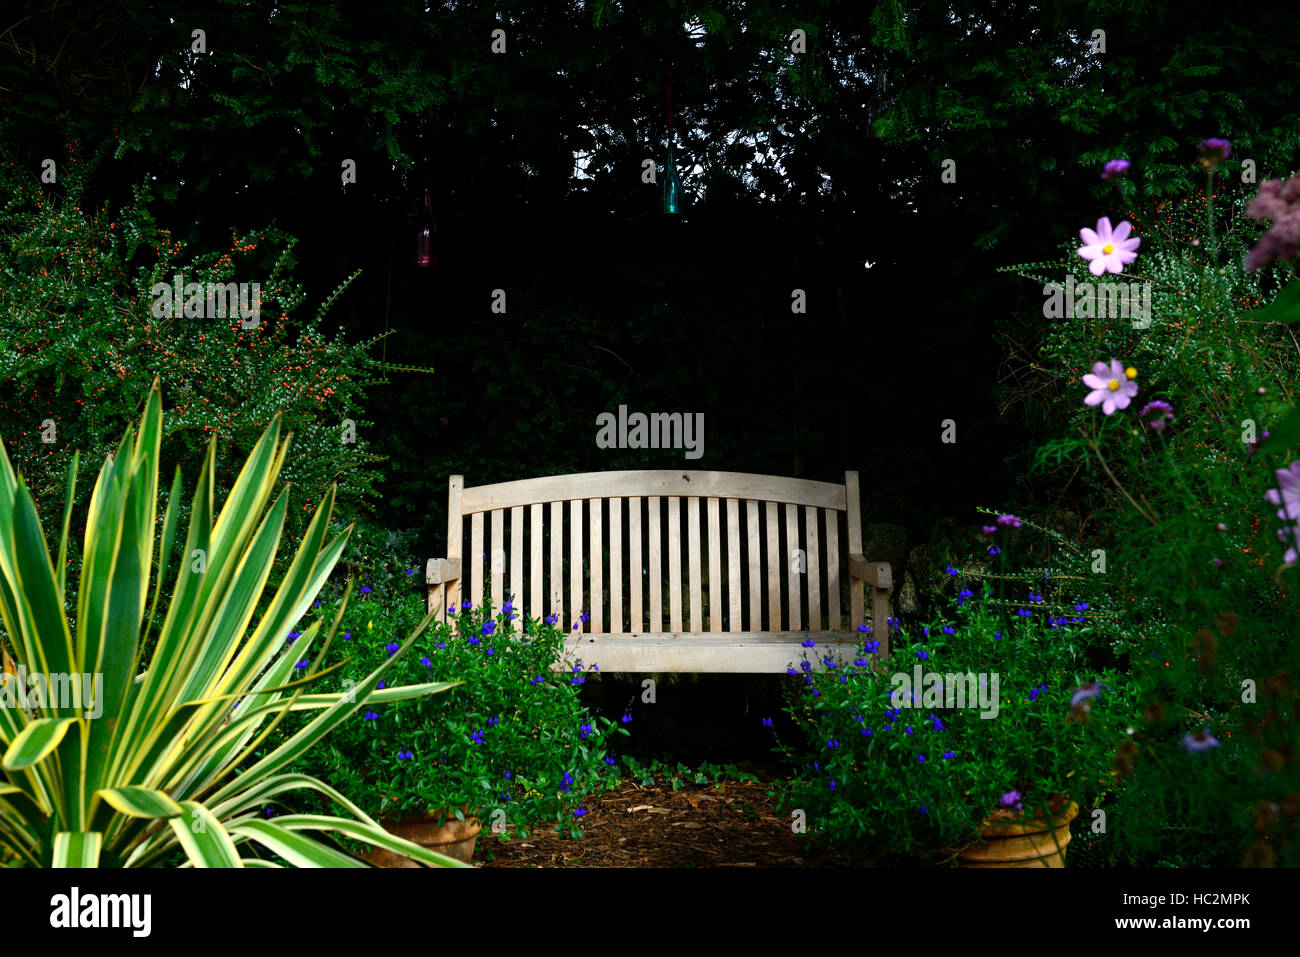 Heavy Duty Counter Stools, Wood Wooden Garden Bench Seat Shade Shady Shaded Area View Viewpoint Stock Photo Alamy